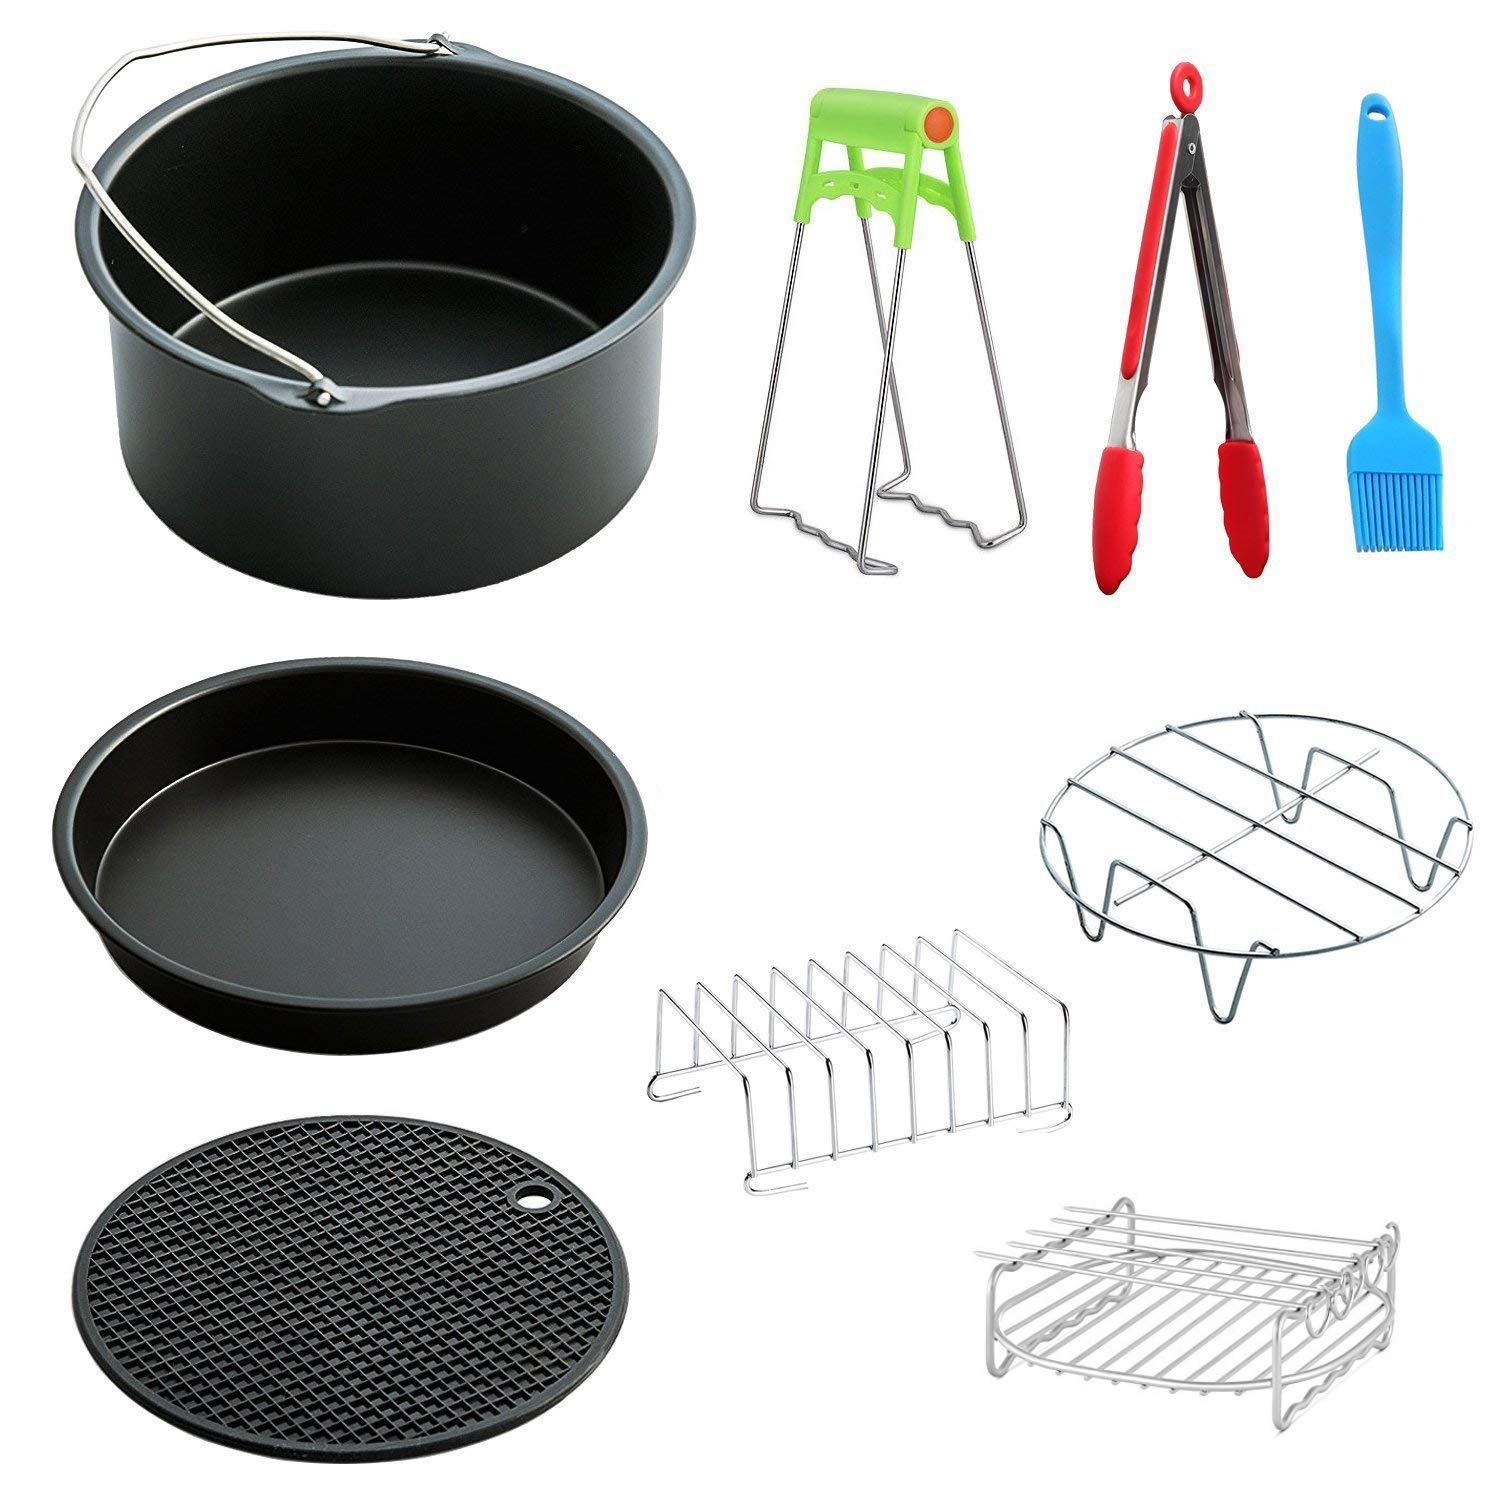 MySit Big Large XL Air Fryer Accessories 8'', Set of 9, for Power Airfryer XL Gowise Phillips Cozyna, Fit All 5.3QT - 5.8QT - AirFryer_8in